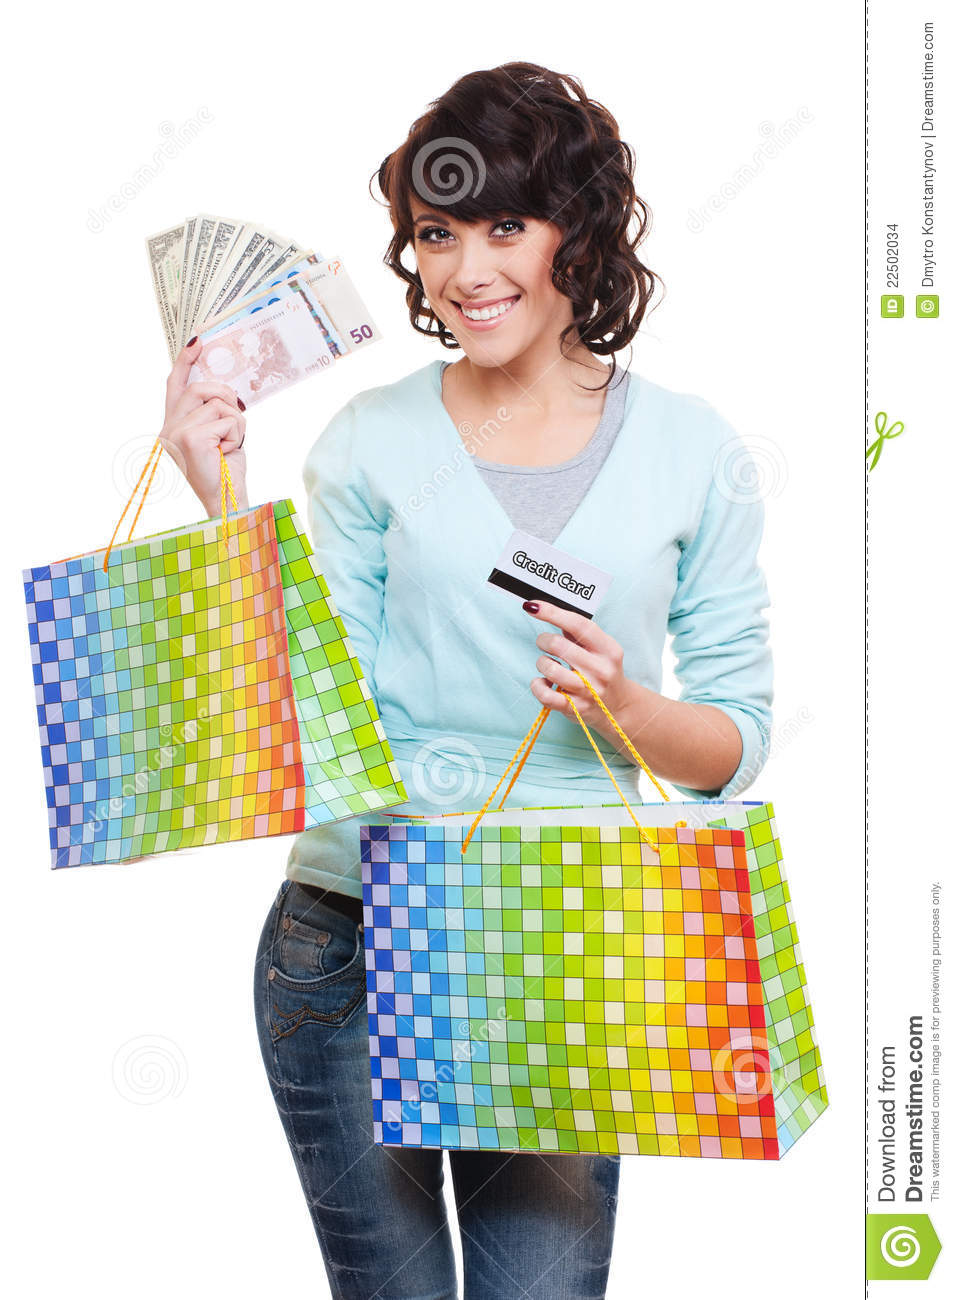 Cool Young Woman Holding A Grocery Bag Stock Photo - Image 11863020